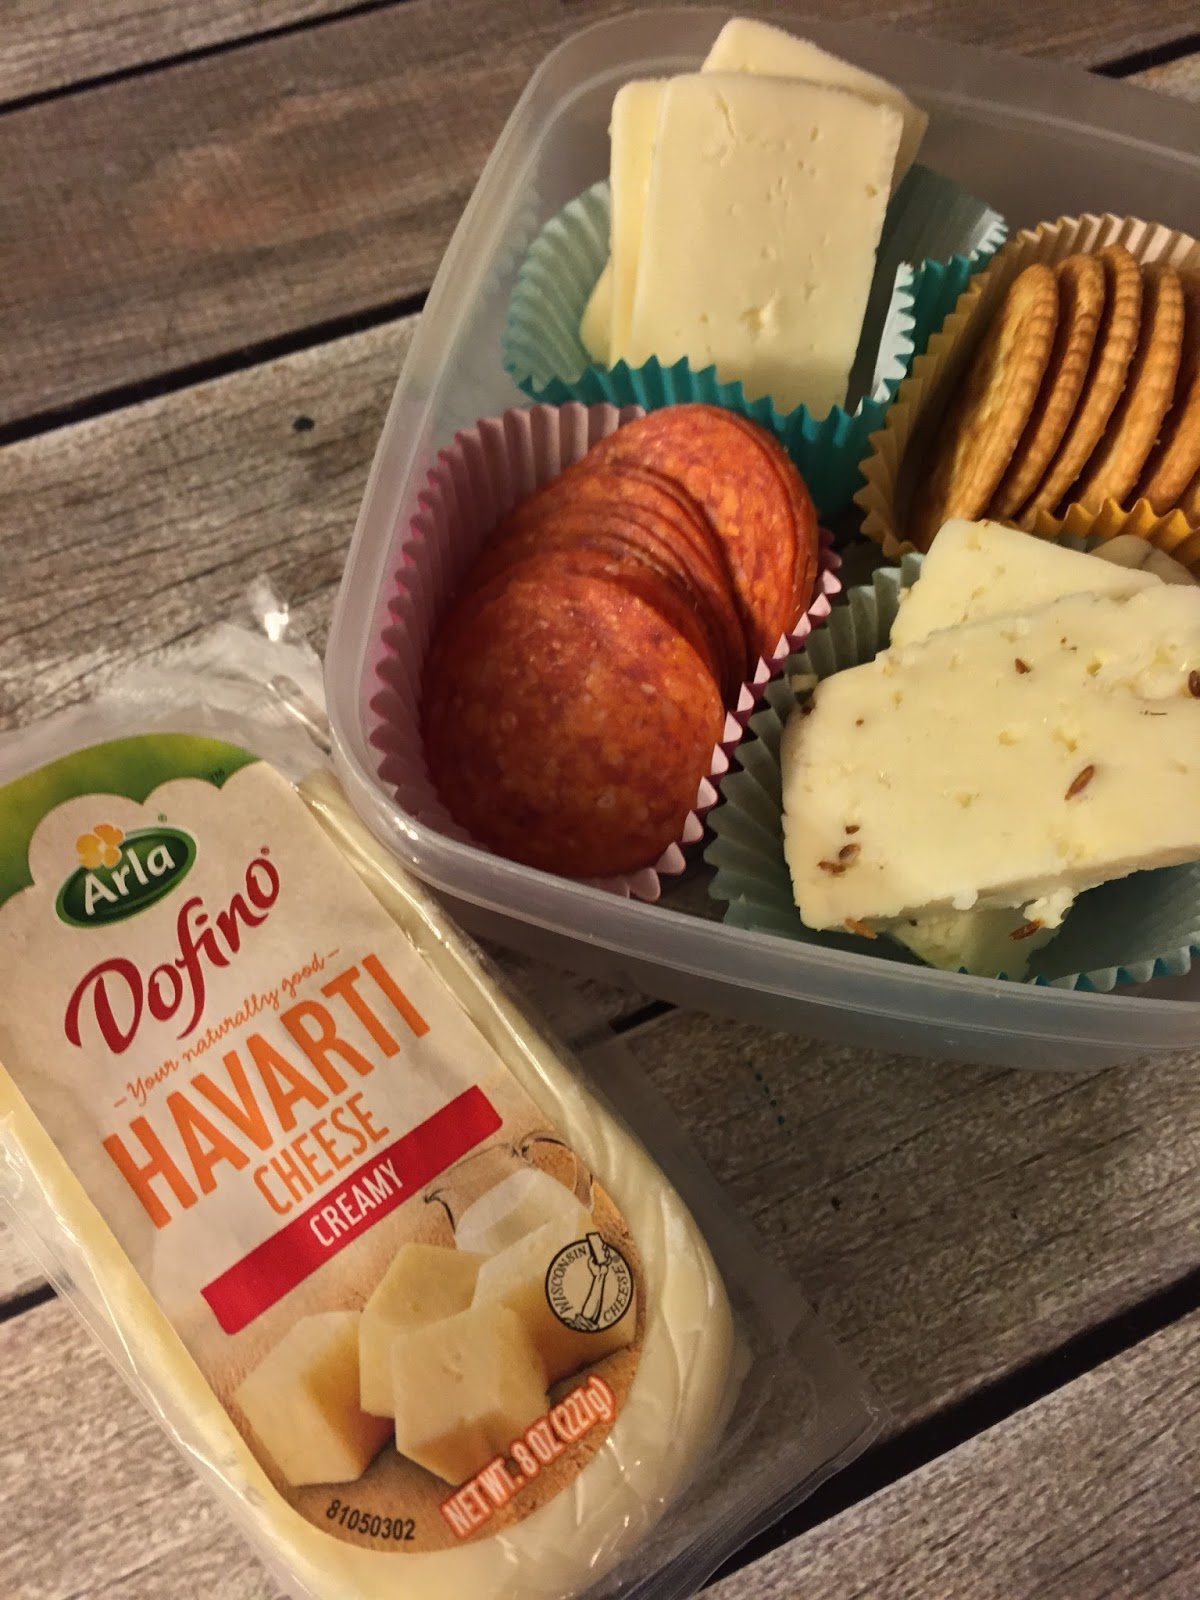 Homemade Lunchables With Arla Dofino besides A Cheese Salami Plate And A Giveaway as well Top 10 Pizza Flavors furthermore 281485 Lunchables Burgers in addition Printable Oscar Mayer Coupons. on different kinds of lunchables